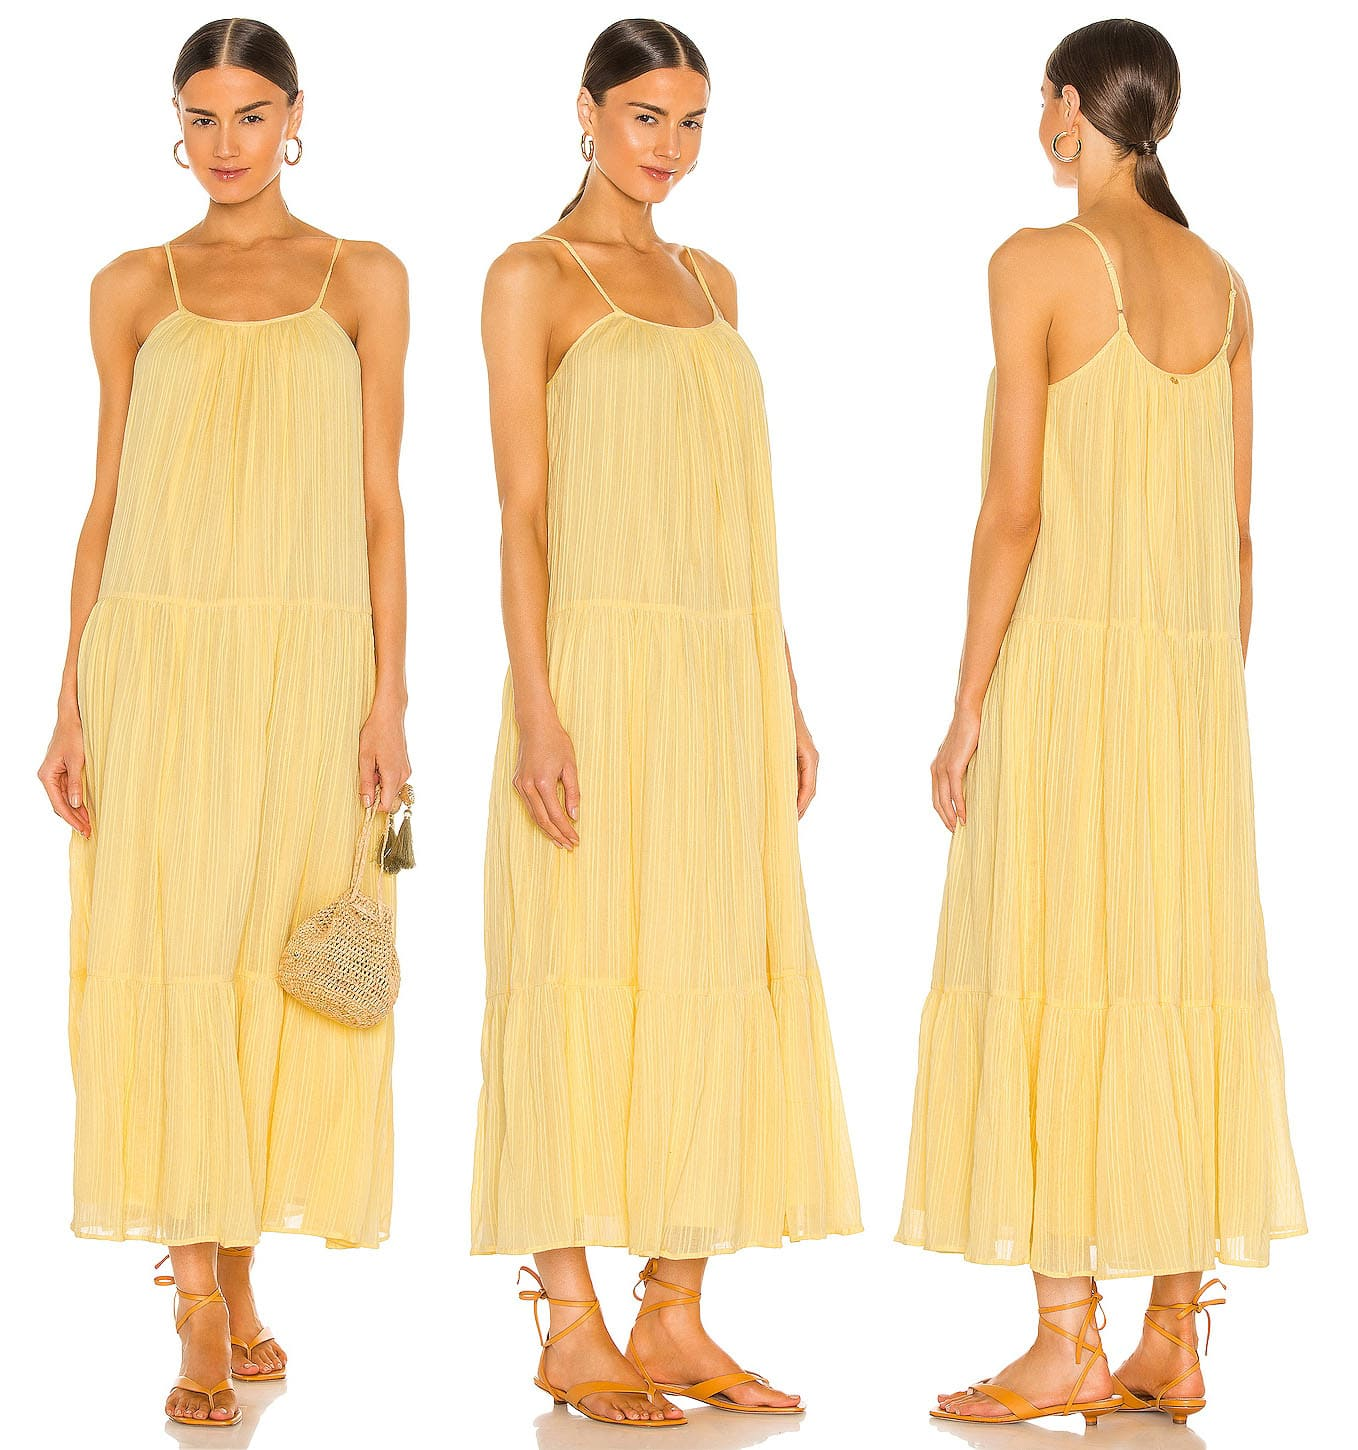 You can pair the PQ Ramona dress with flat sandals, heels or boots for an afternoon lunch, a night out, or a music festival